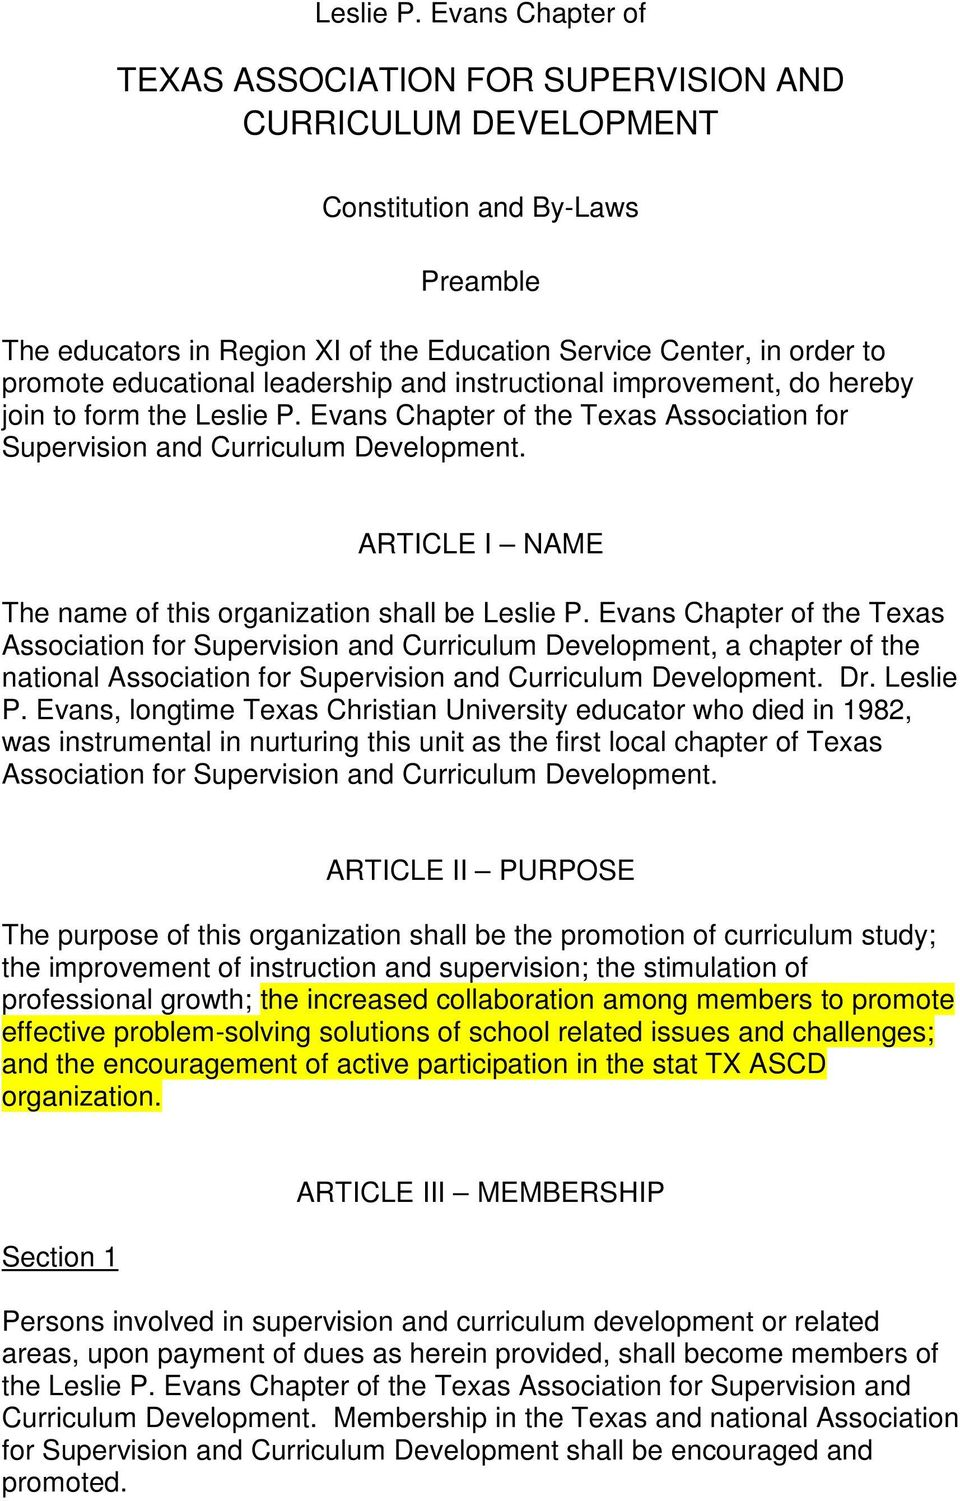 educational leadership and instructional improvement, do hereby join to form the  Evans Chapter of the Texas Association for Supervision and Curriculum Development.